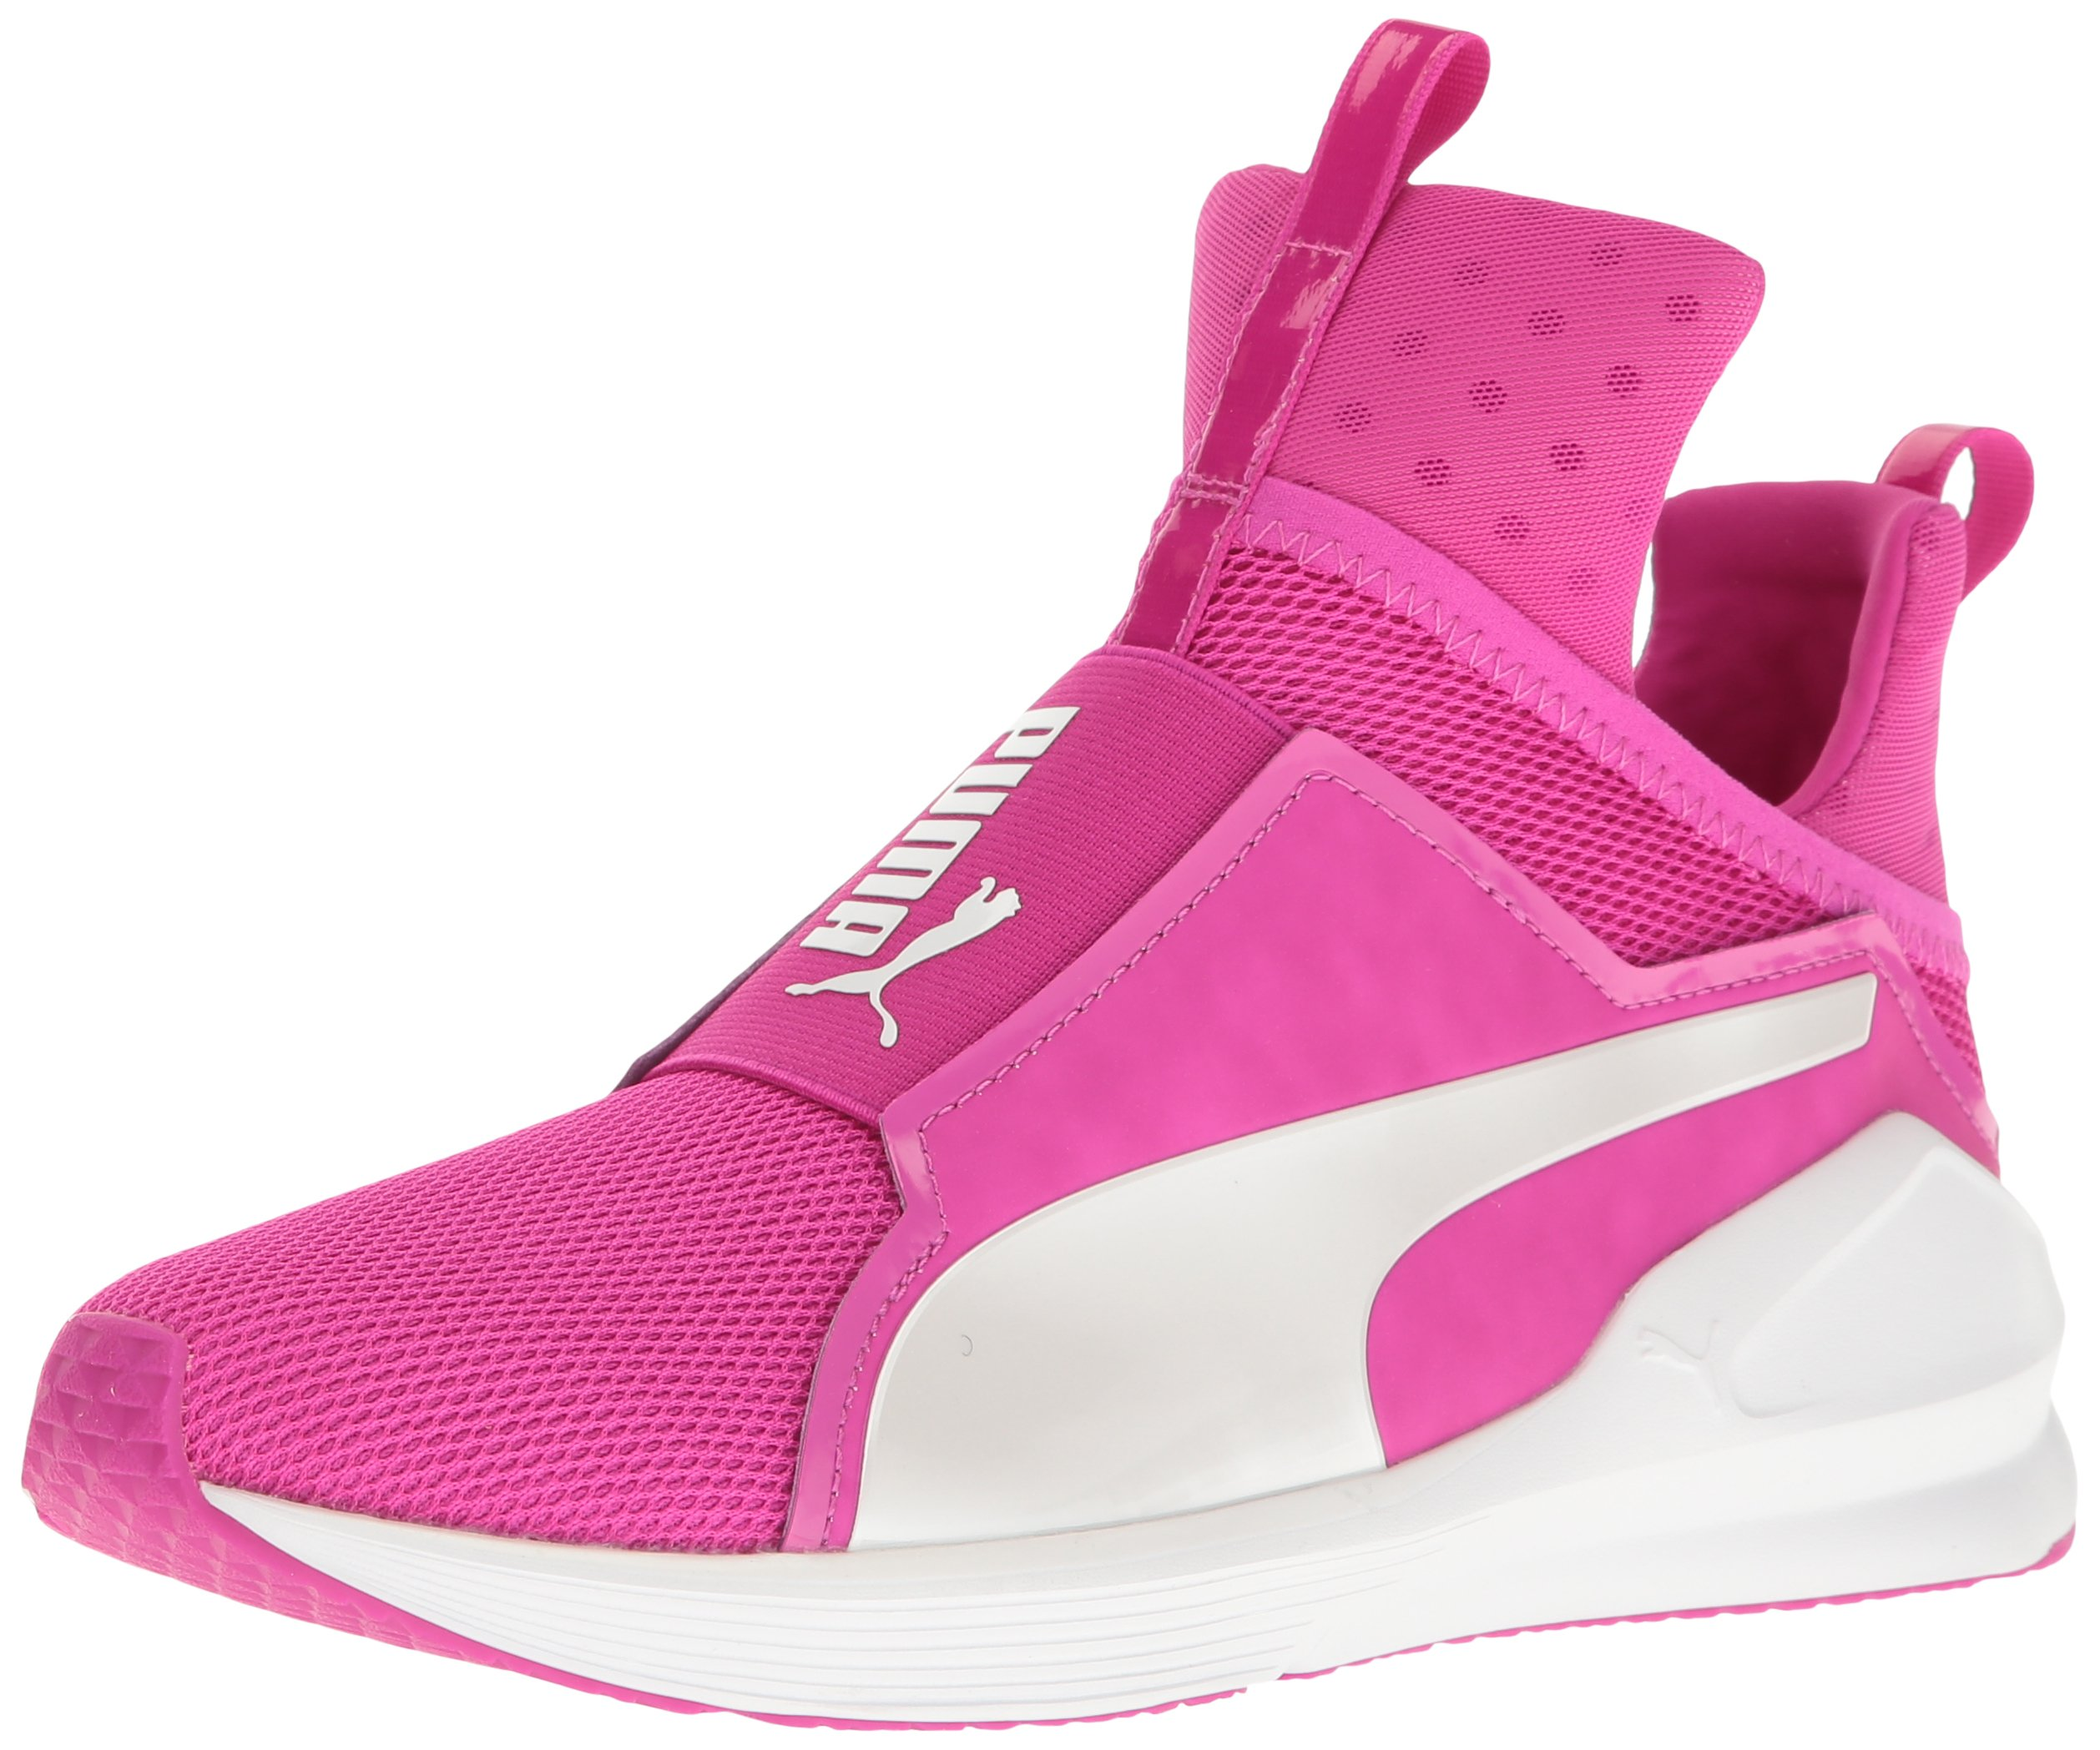 separation shoes c8f08 1a9ca PUMA Women s Fierce Core Cross-Trainer Shoe